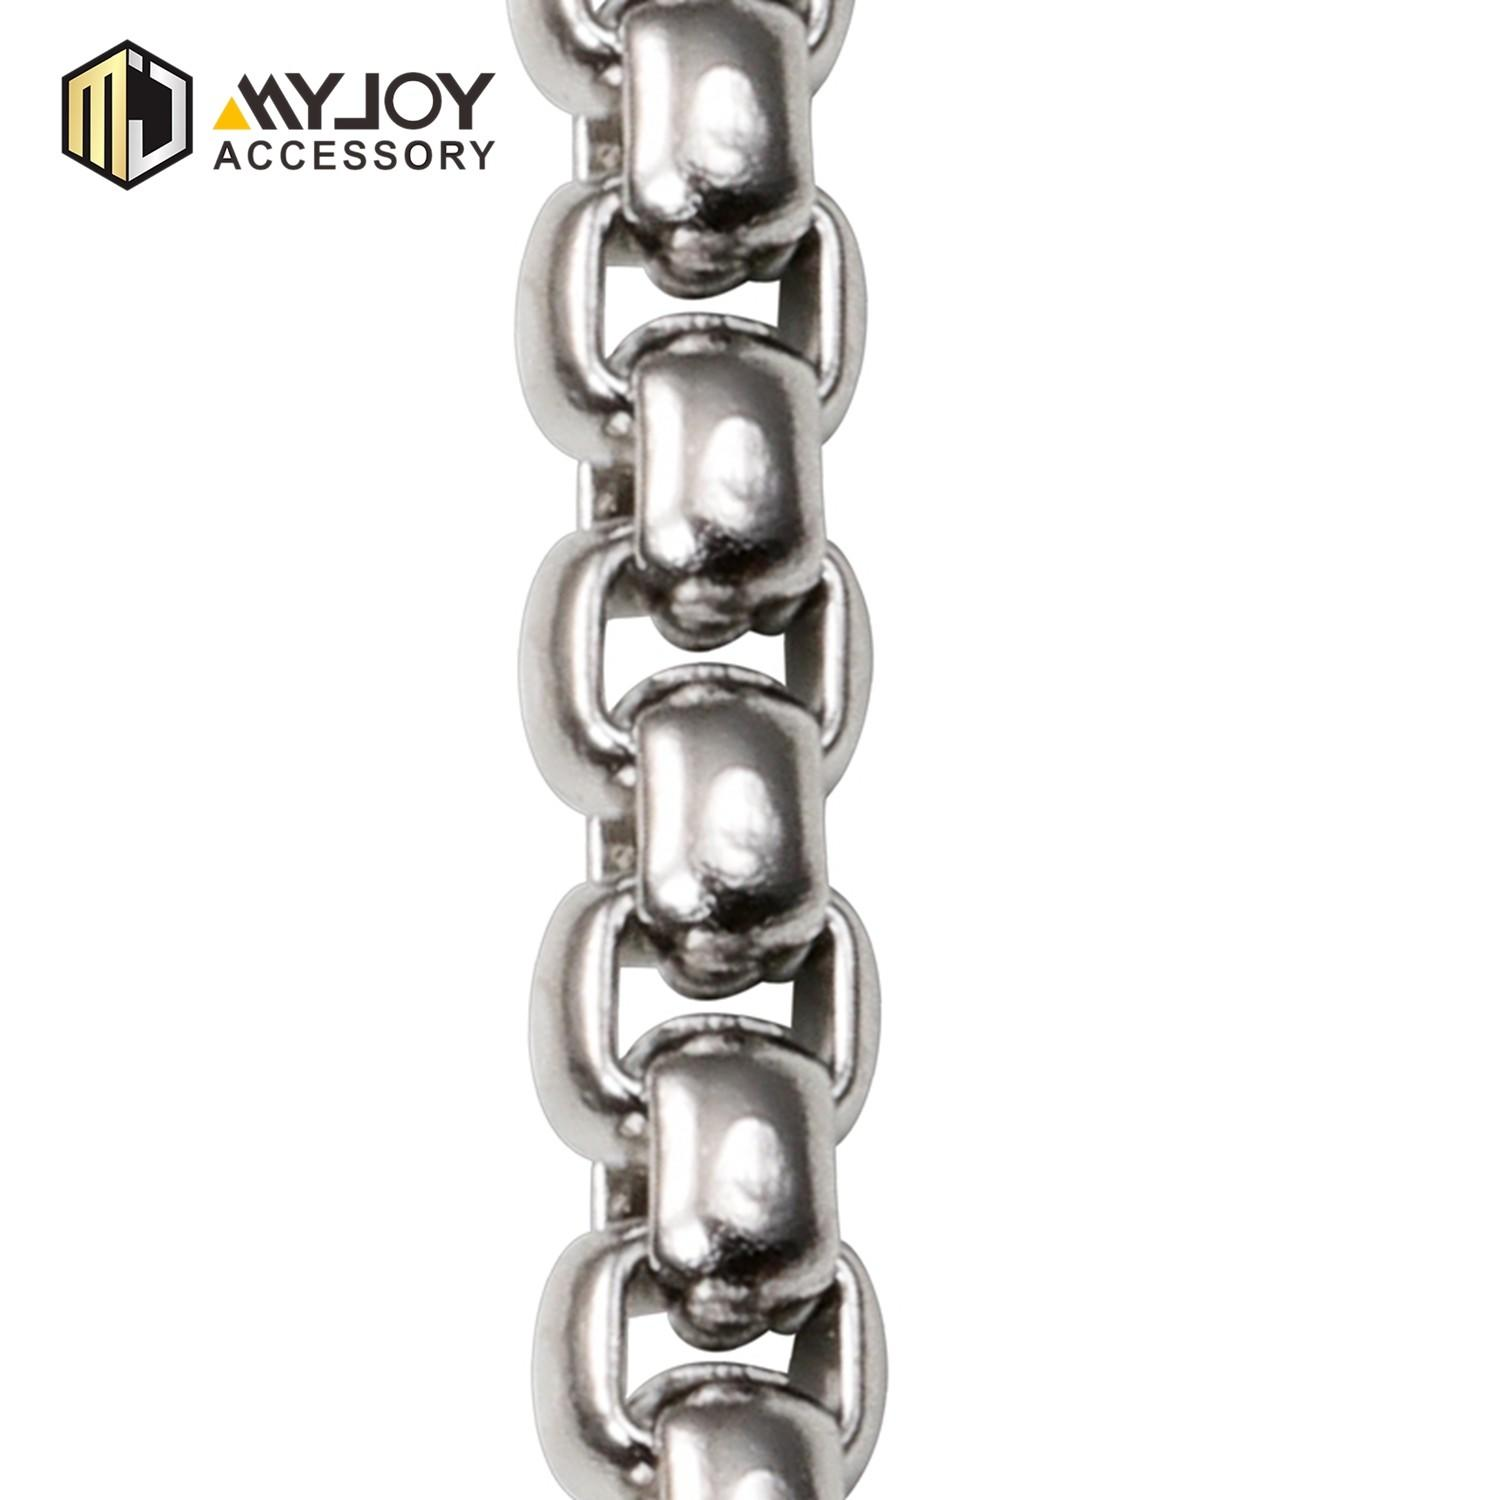 MYJOY High-quality strap chain Supply for purses-1